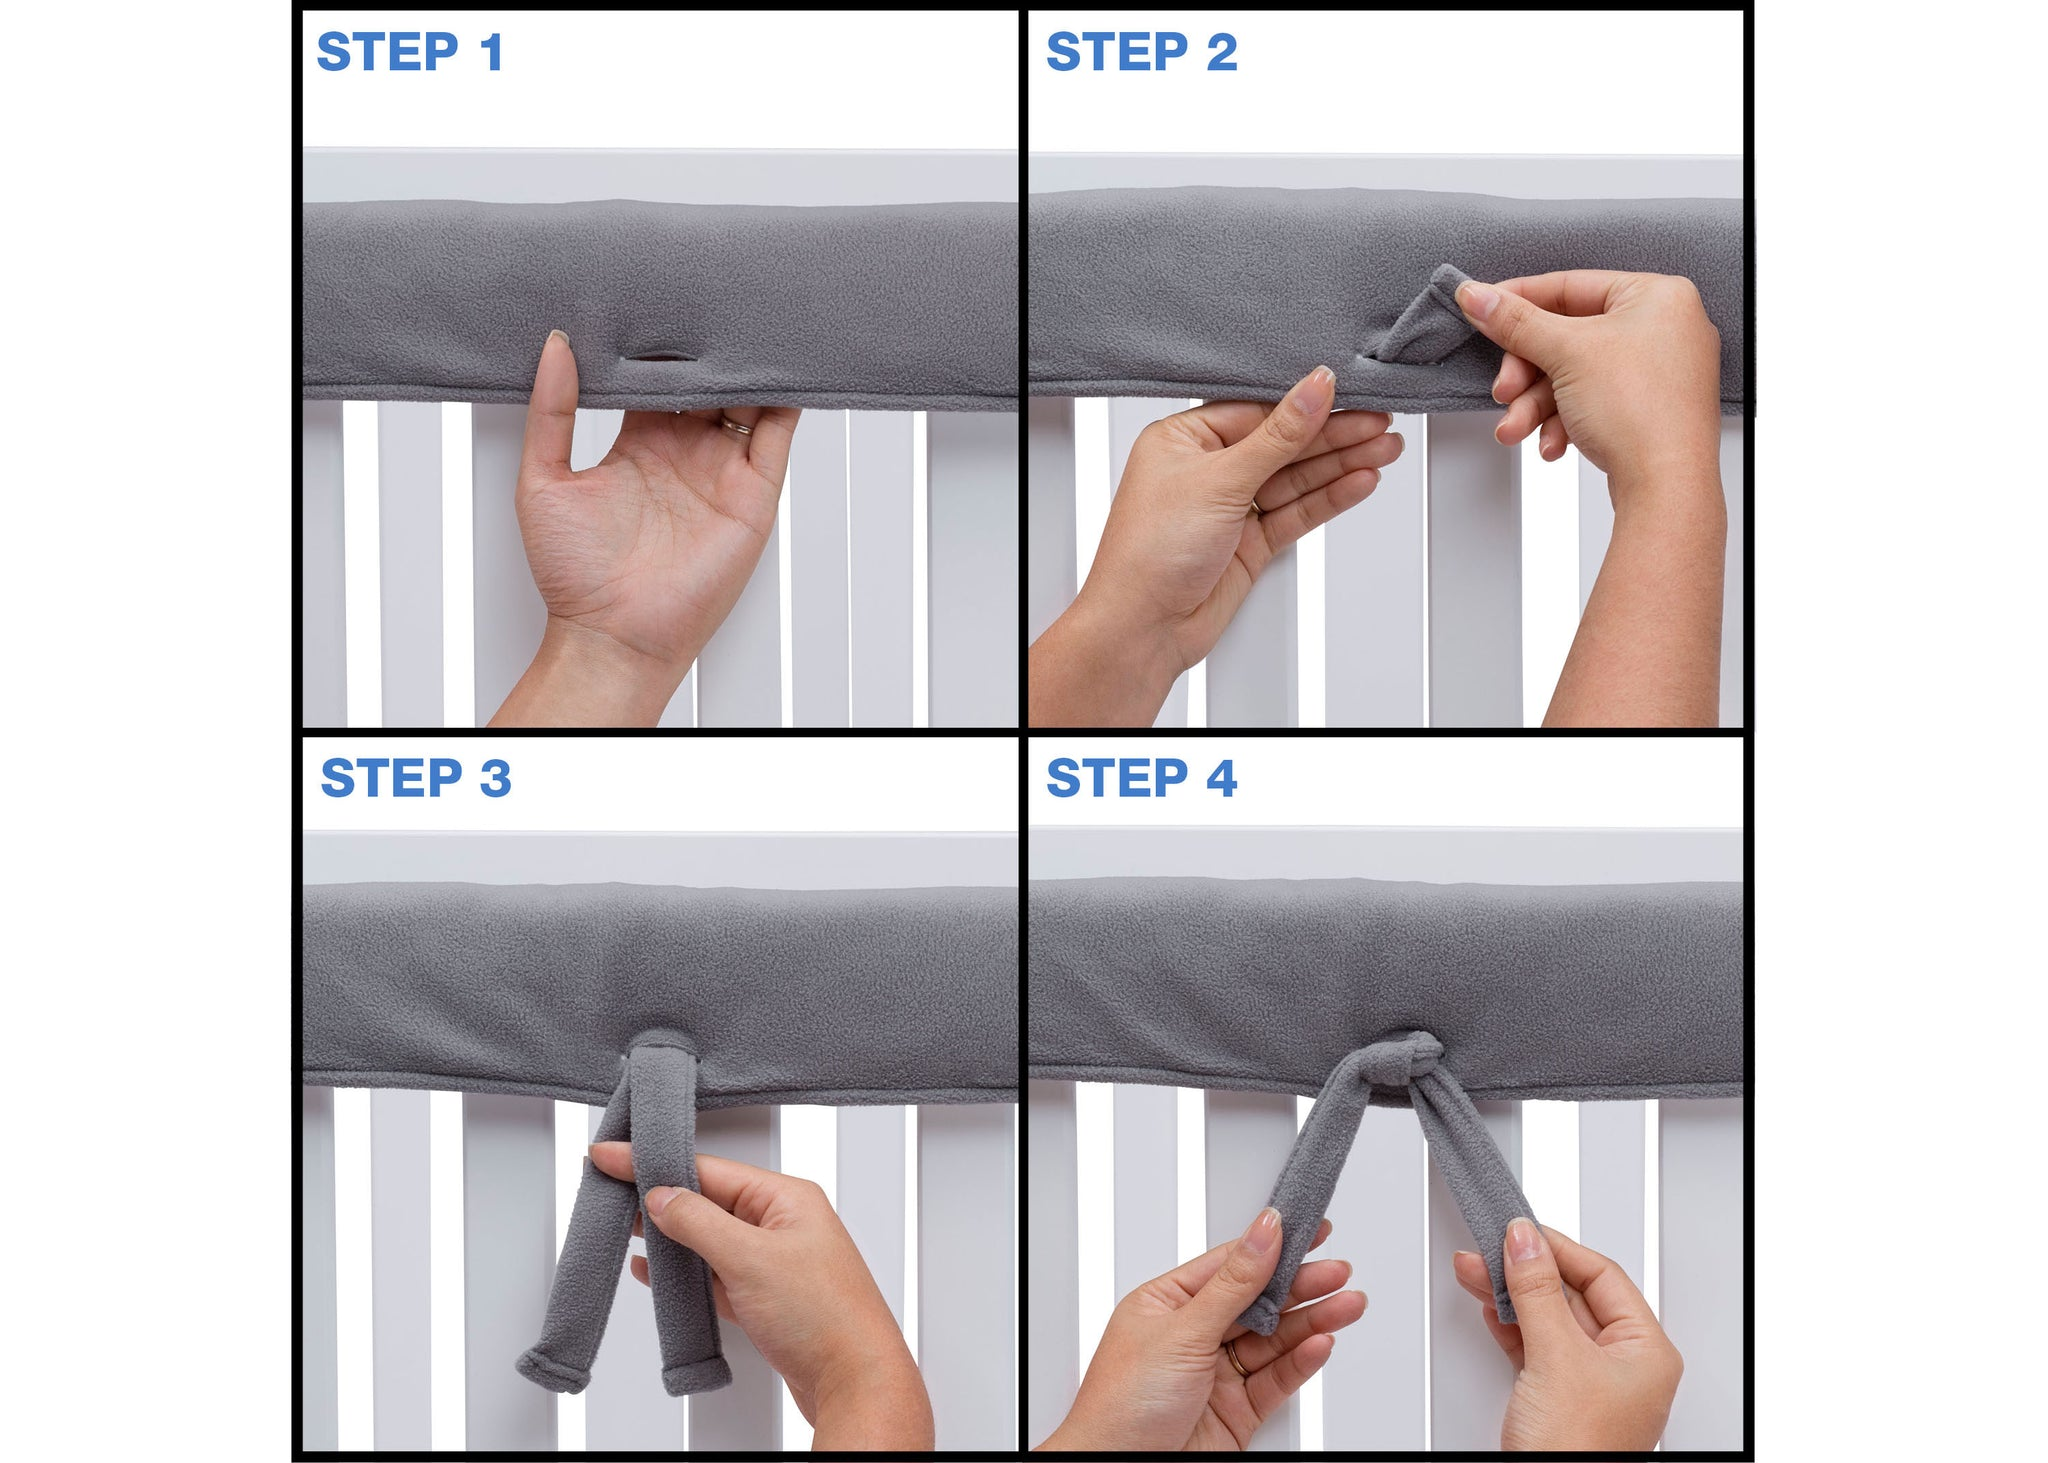 Delta Children Grey (026) Waterproof Fleece Crib Rail Covers/Protectors for Short Side Rails, 2 Pack, Tie Steps View